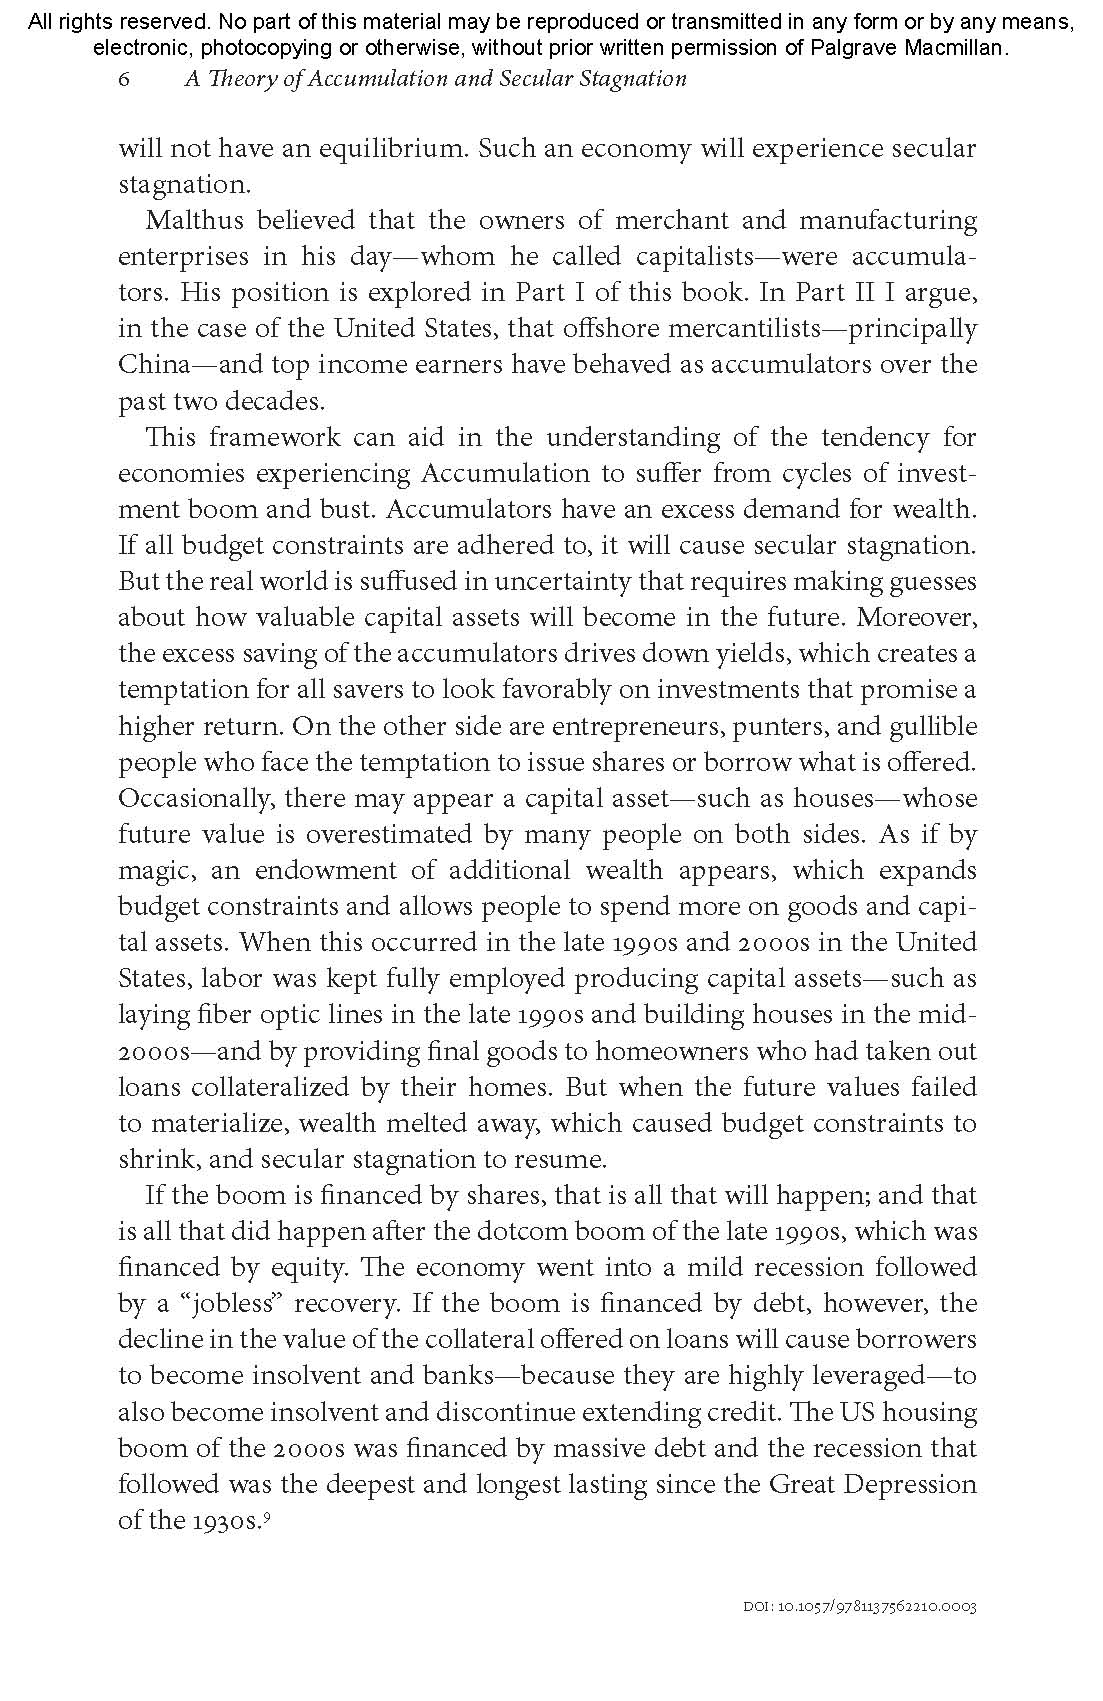 Pages from Accumulation and Secular Stagnation - pdf published book-2_Page_12.jpg